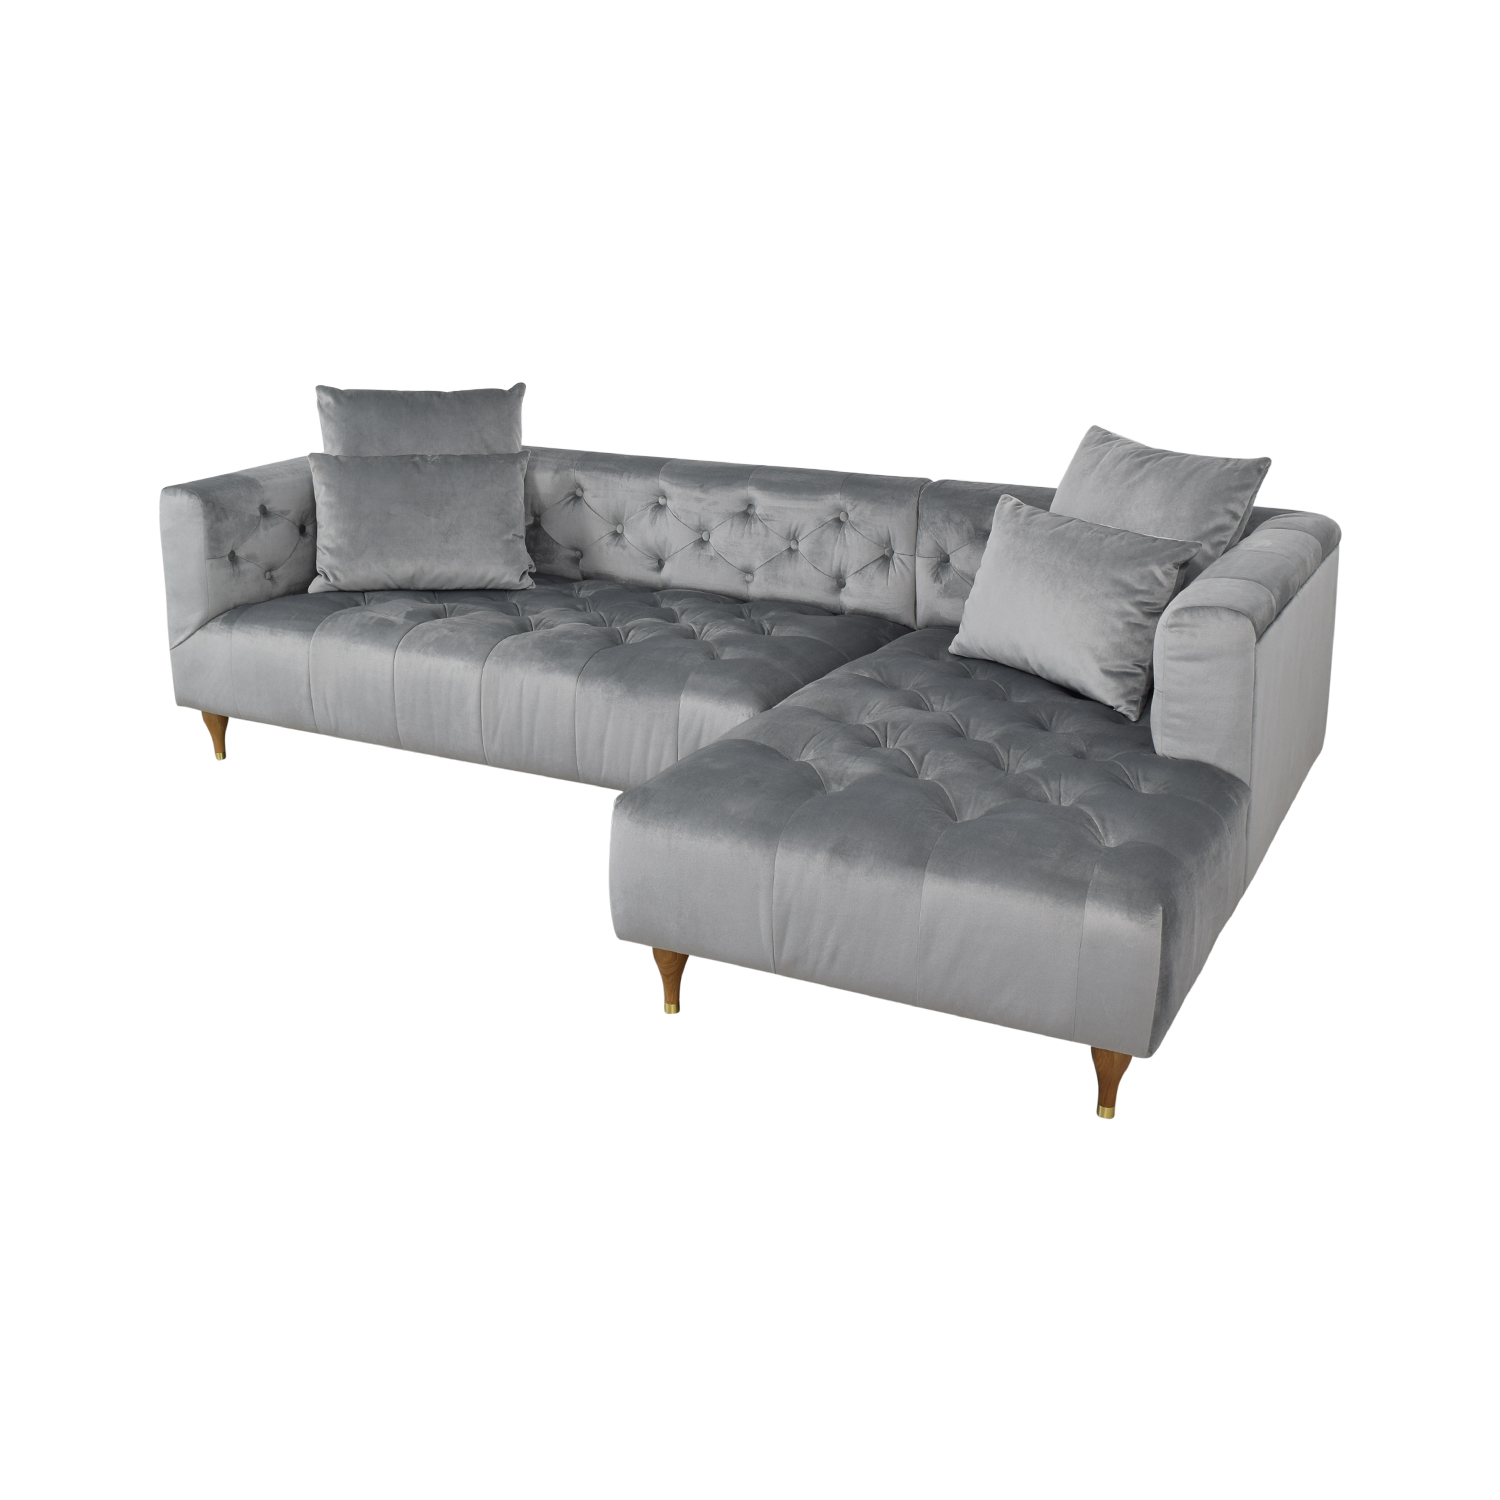 Interior Define Ms. Chesterfield Light Grey Tufted Right Chaise Sectional coupon